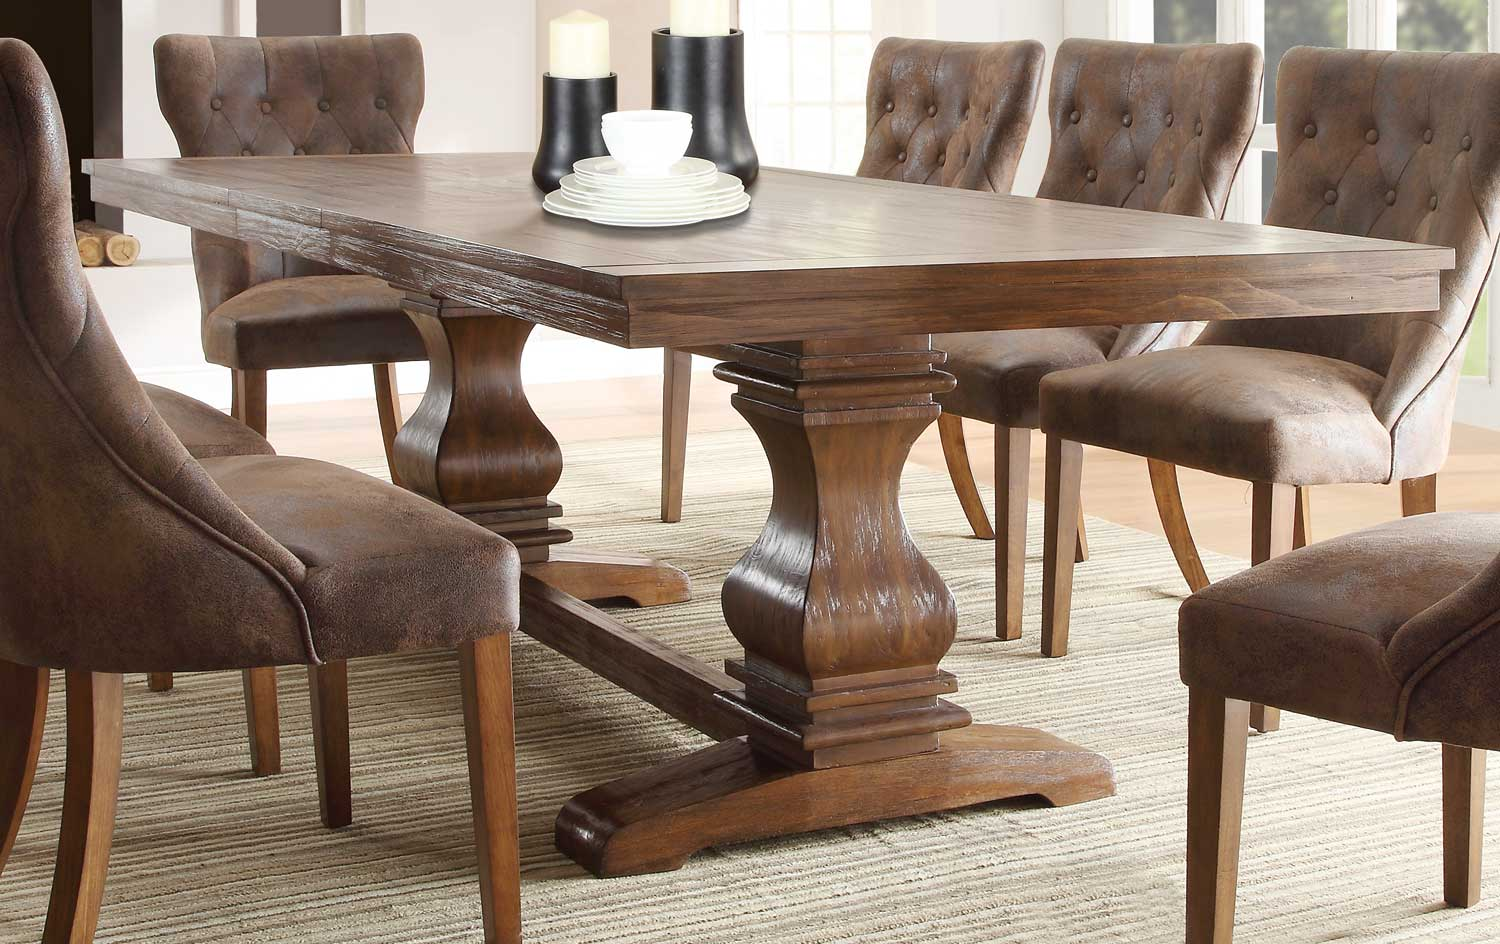 Homelegance Marie Louise Dining Table Rustic Oak Brown  : HE 2526 96 from www.homelement.com size 1500 x 944 jpeg 171kB